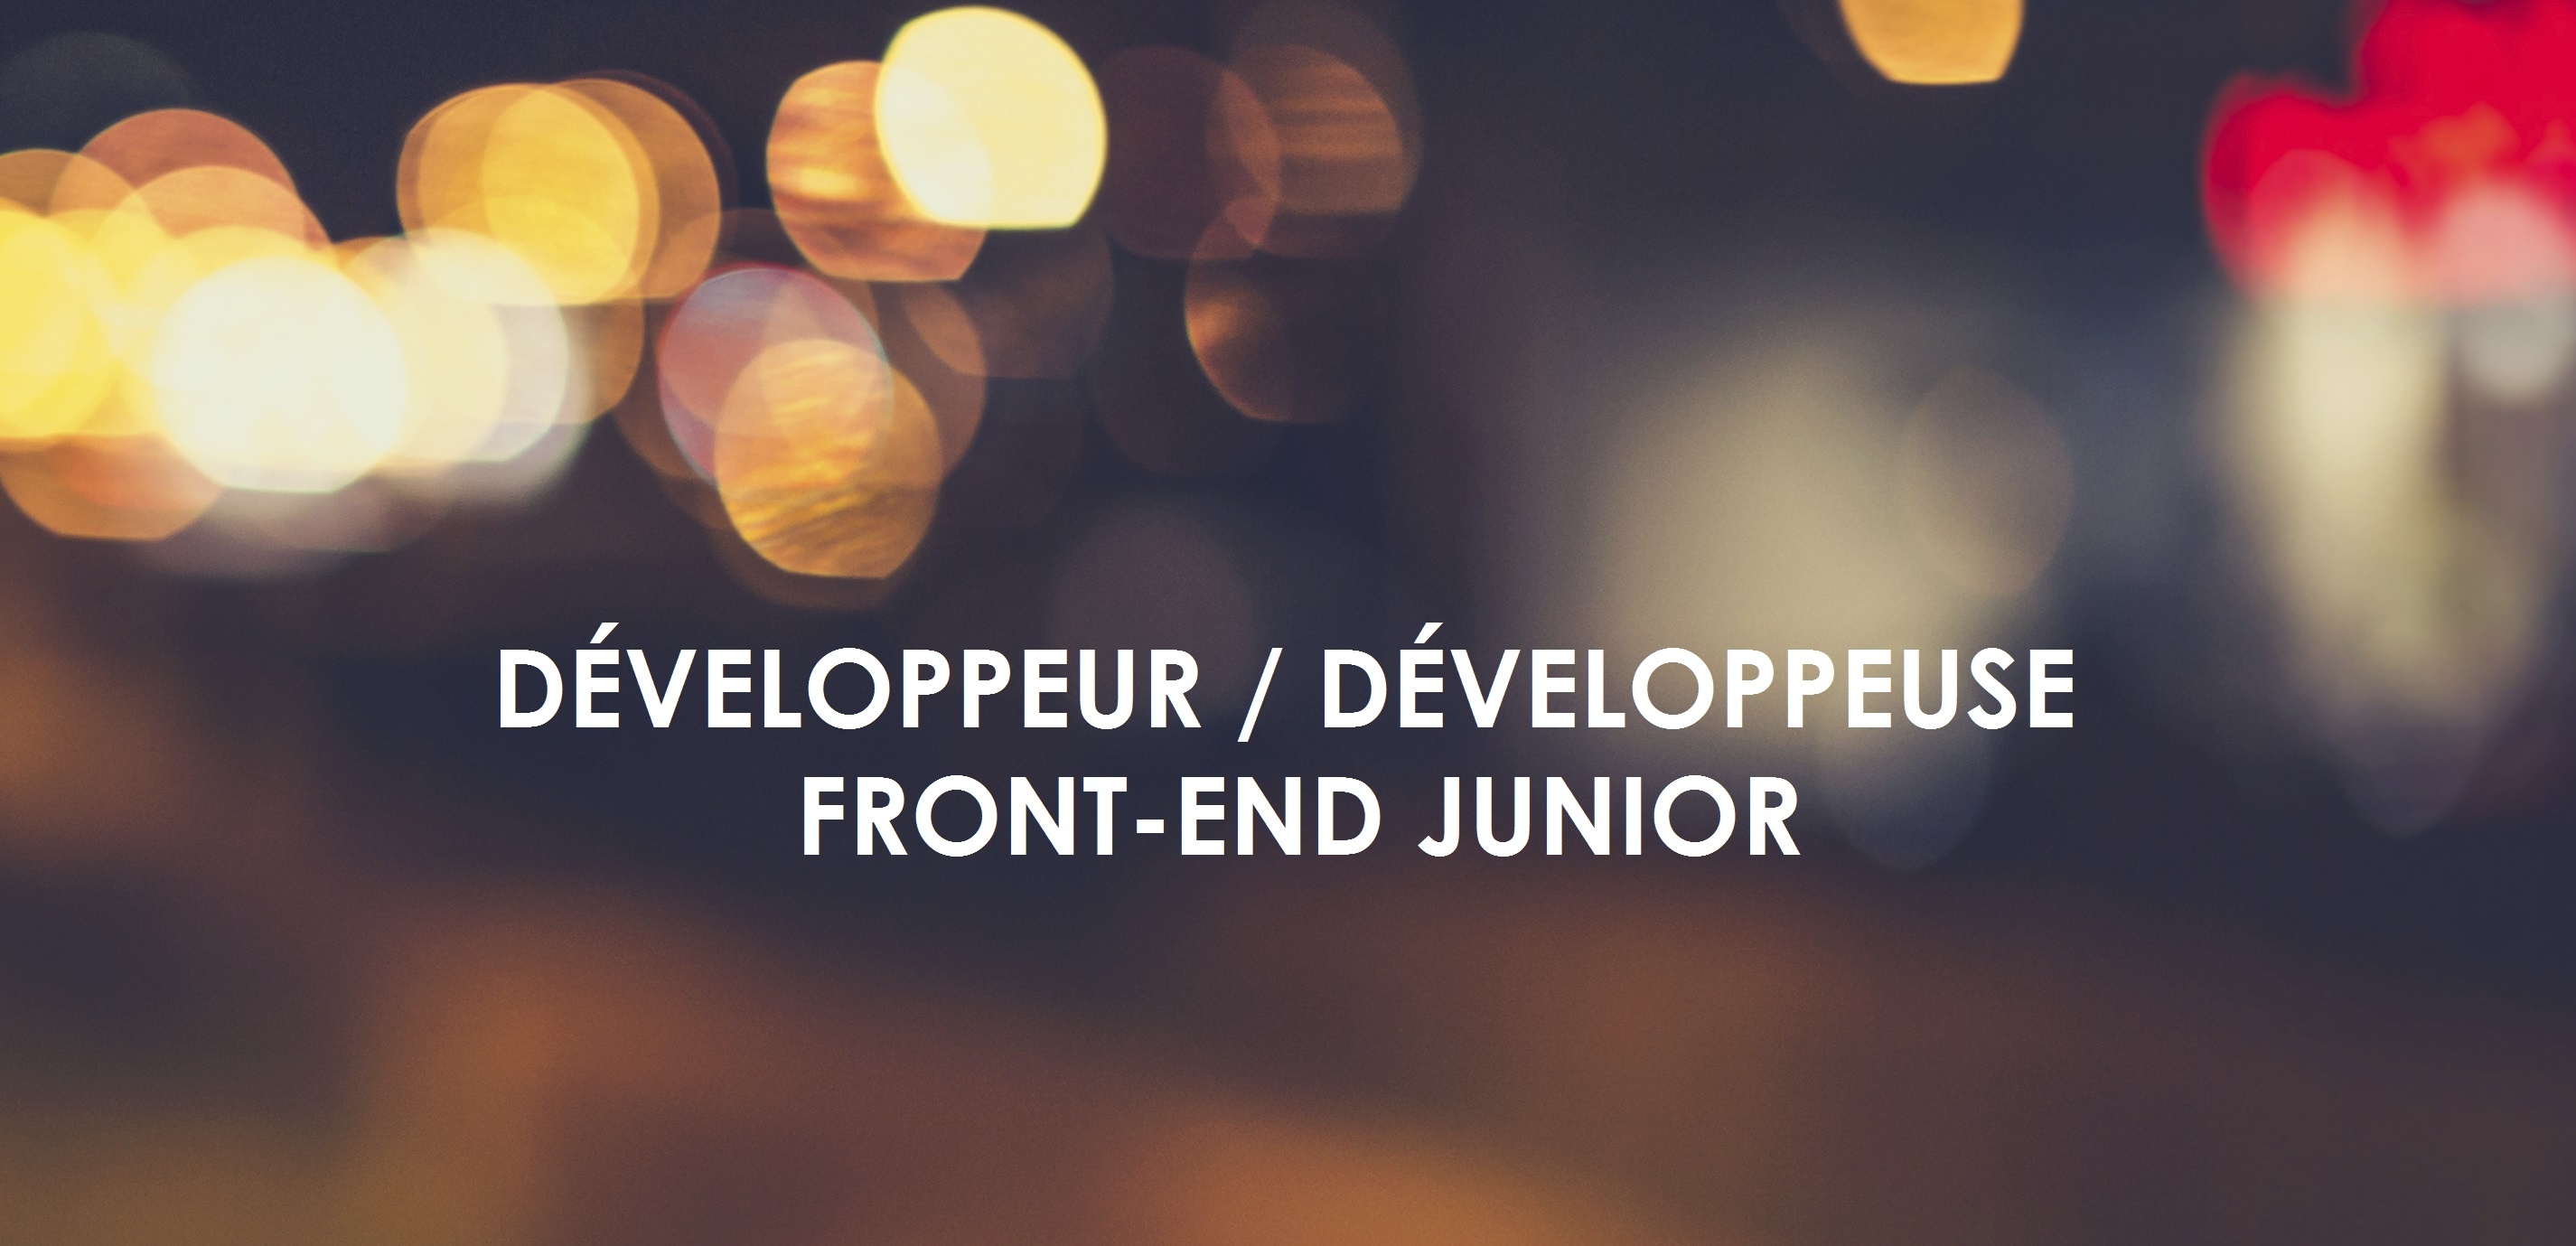 dev front-end junior